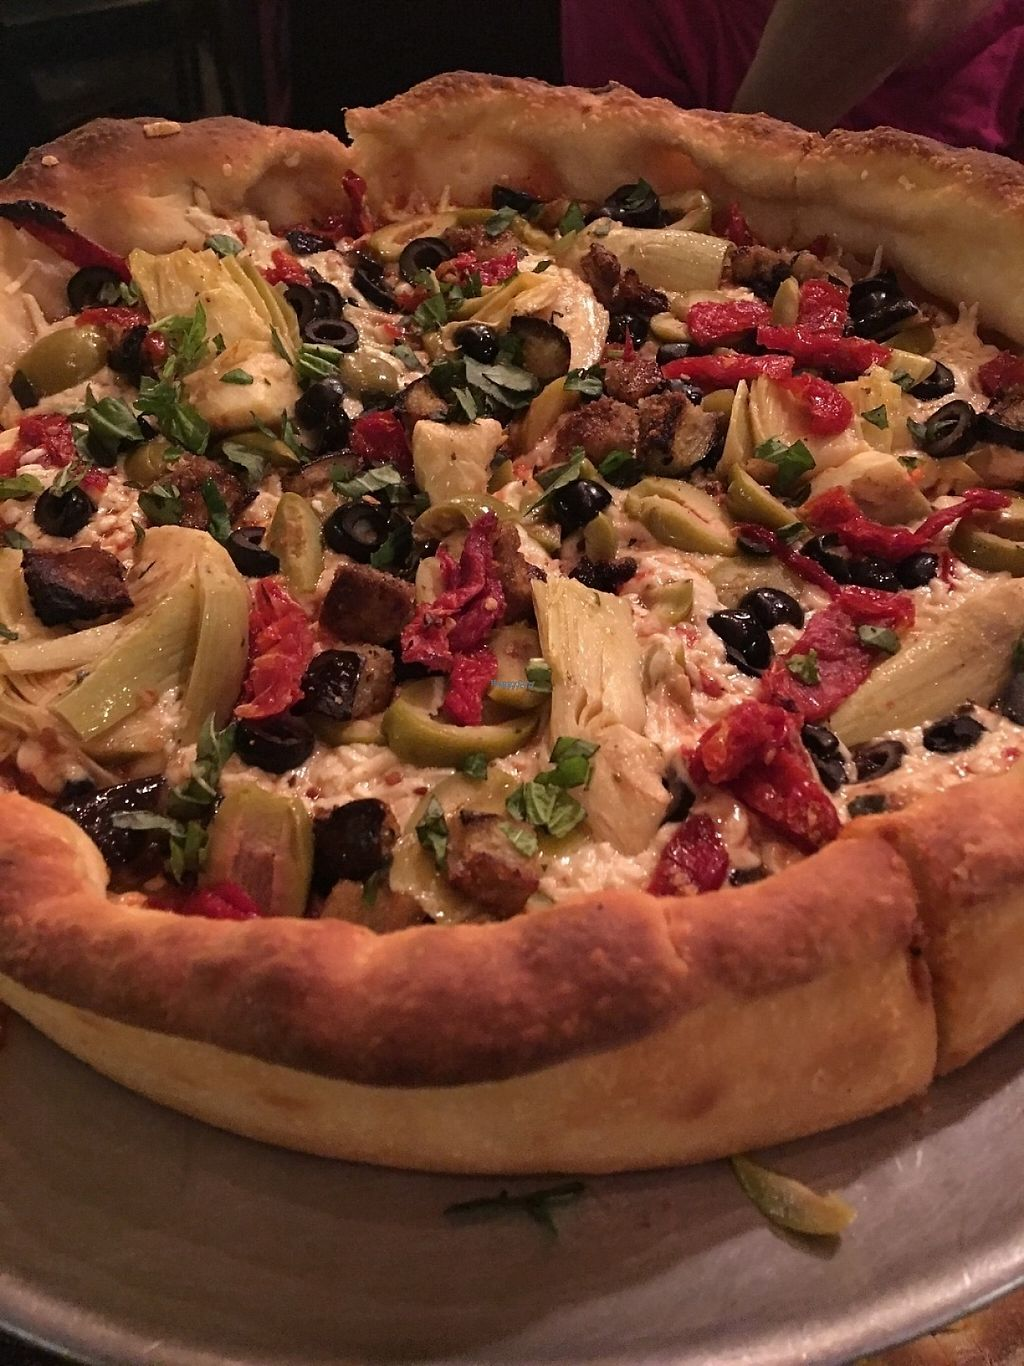 """Photo of Bianelli's Gourmet Pizza  by <a href=""""/members/profile/myra975"""">myra975</a> <br/>Vegan Deep Dish Pizza <br/> March 7, 2017  - <a href='/contact/abuse/image/22583/233880'>Report</a>"""